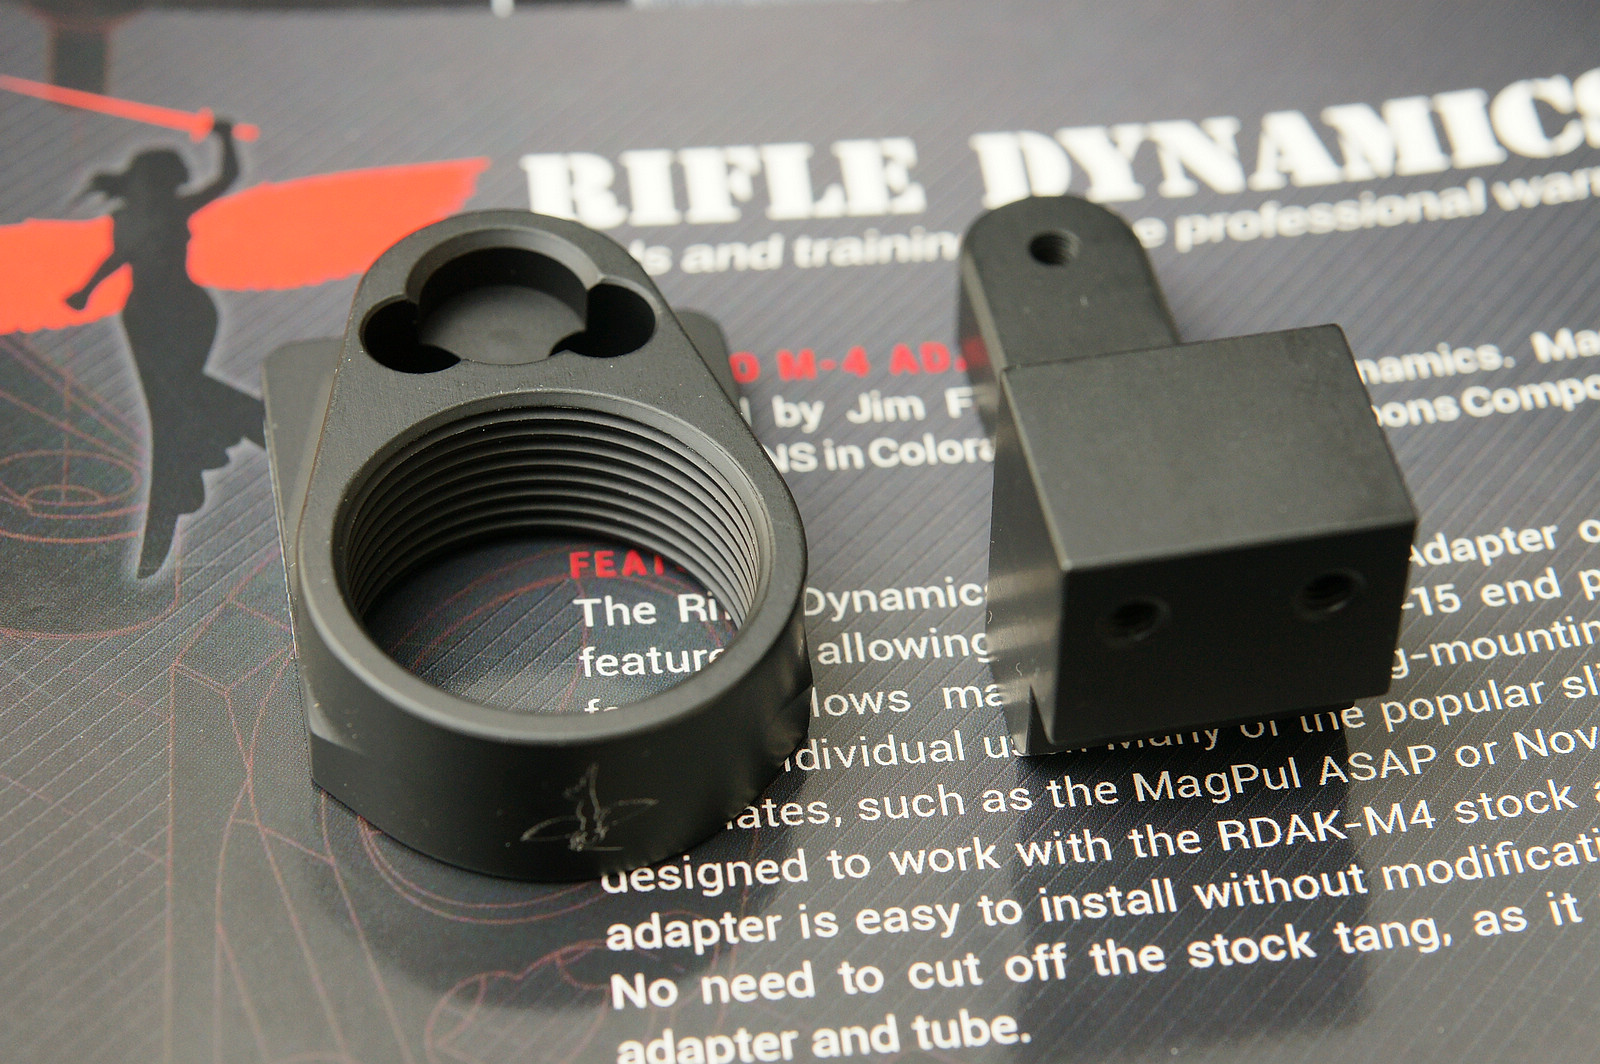 Rifle Dynamics RDAK-M-4 Stock Adapter for AK - 舞刀弄枪枪友会